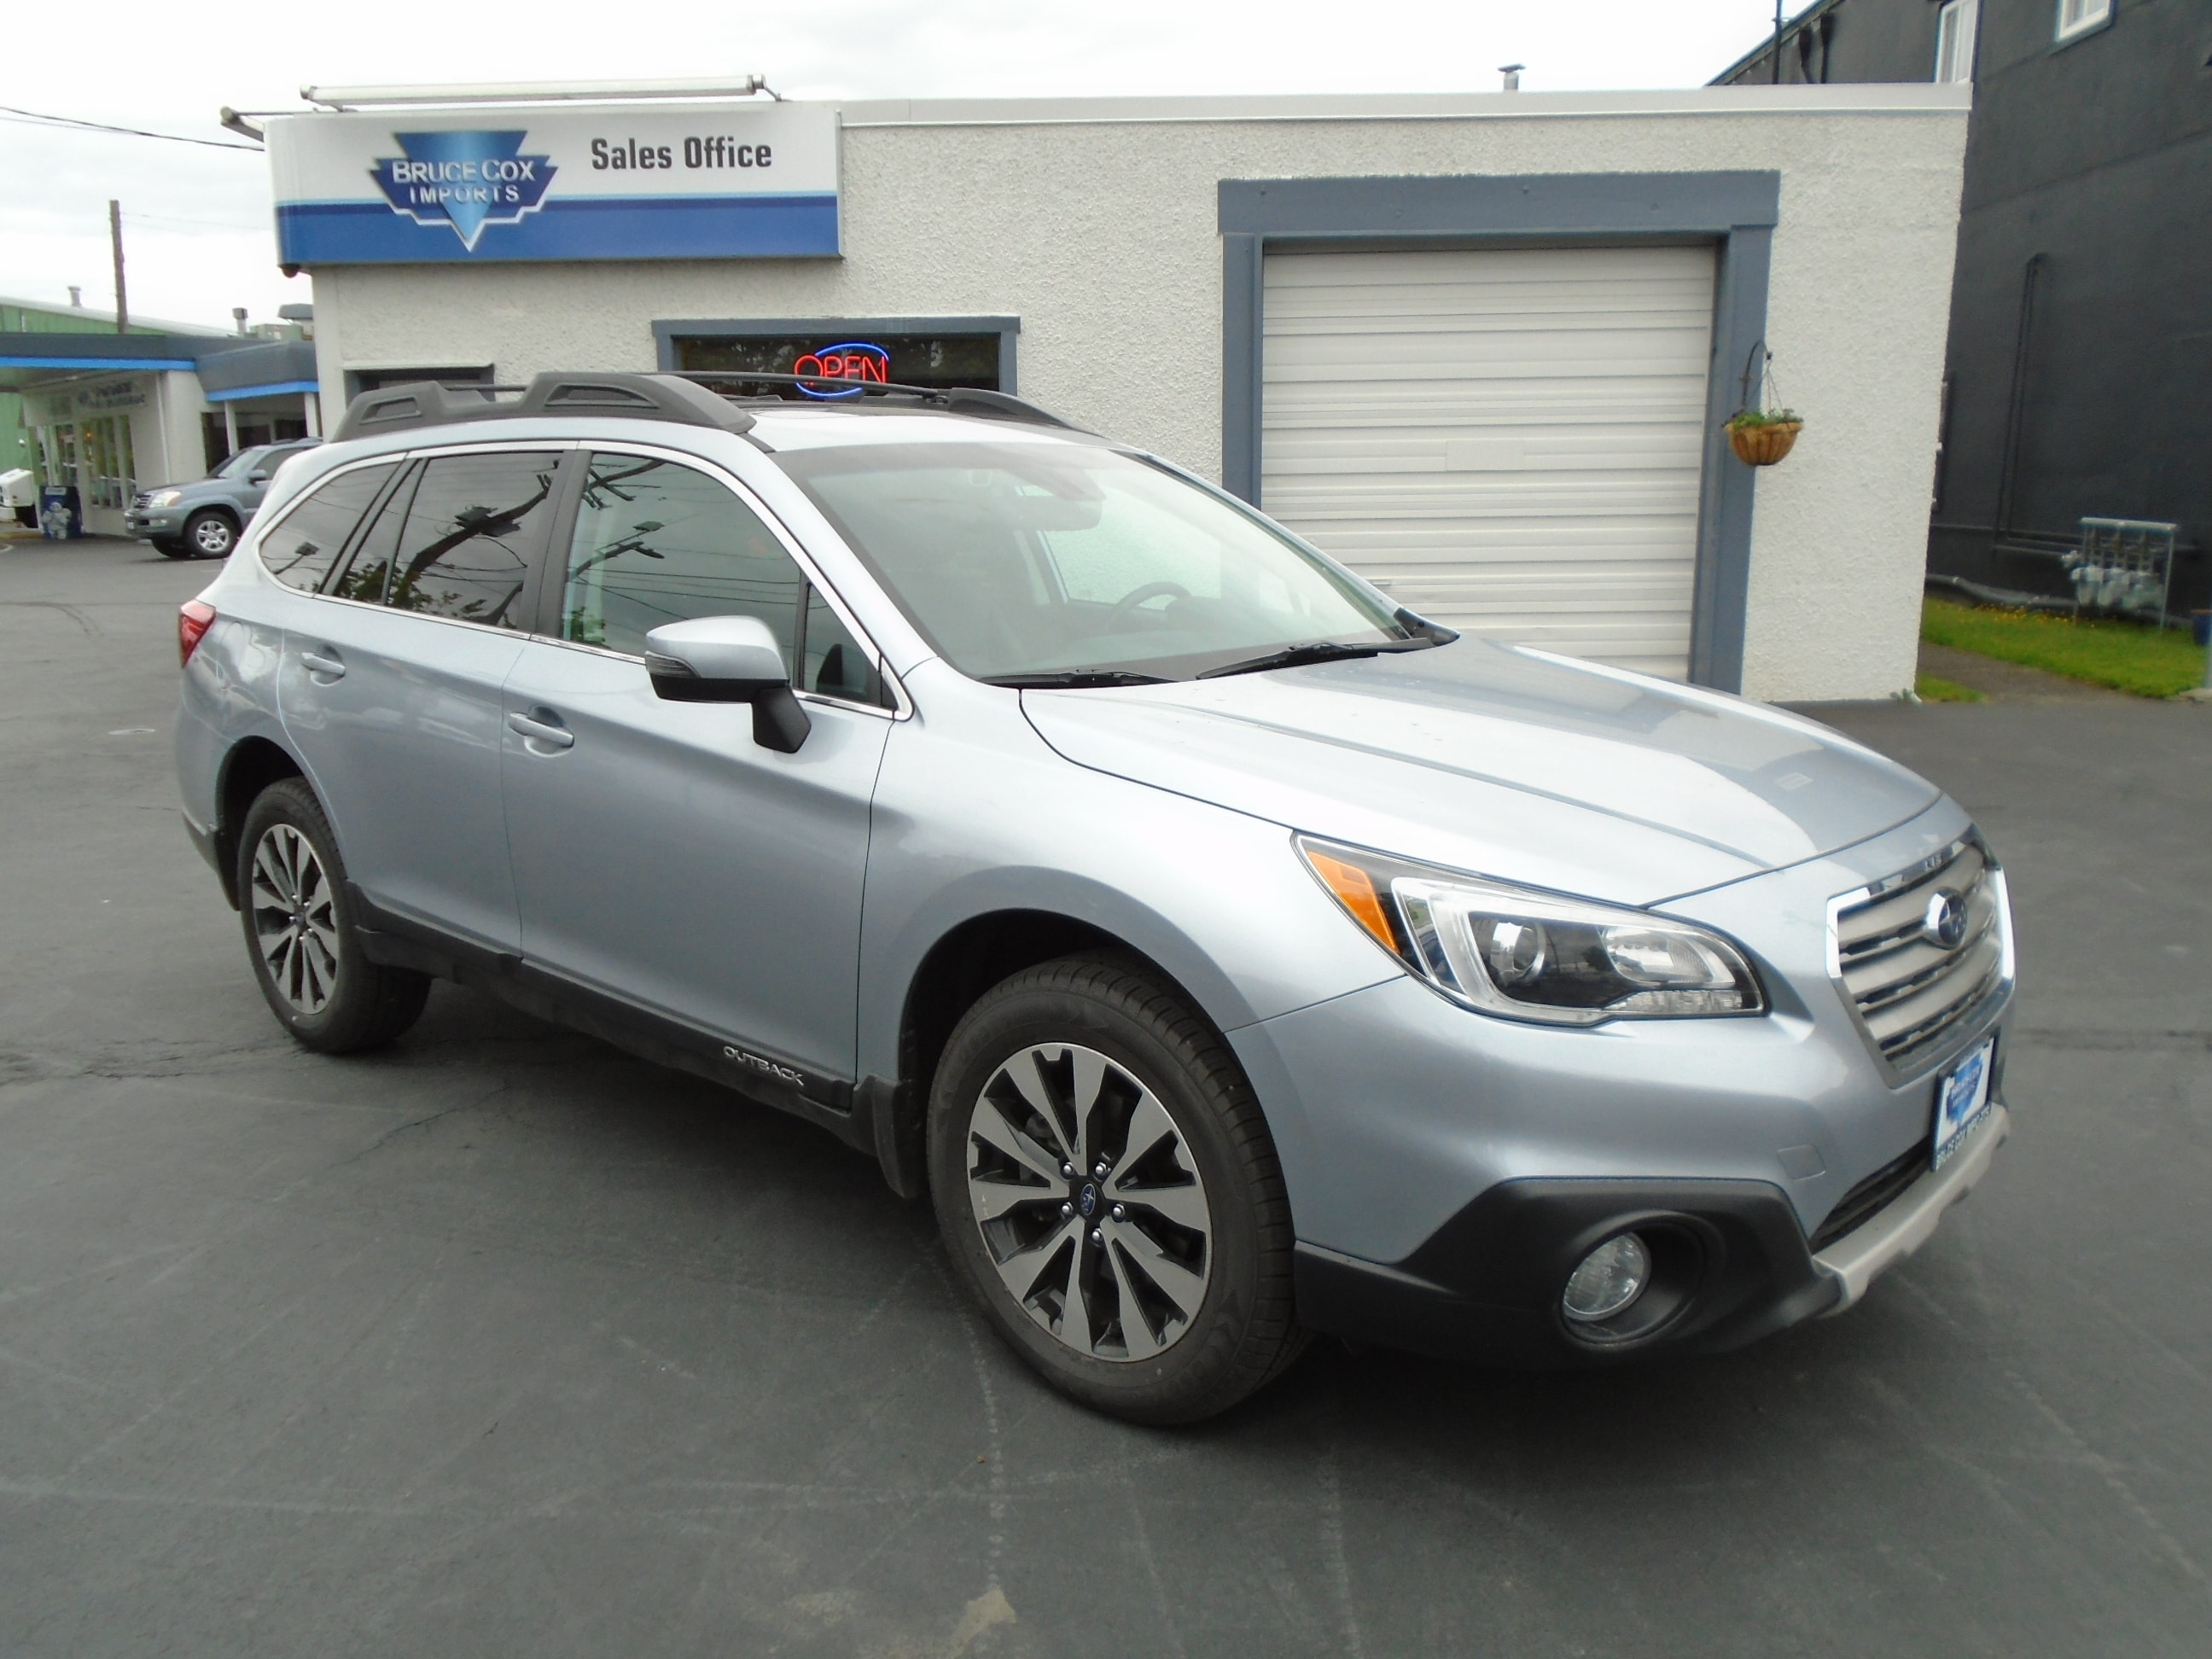 Used 2017 Subaru Outback For Sale at Bruce Cox Imports | VIN